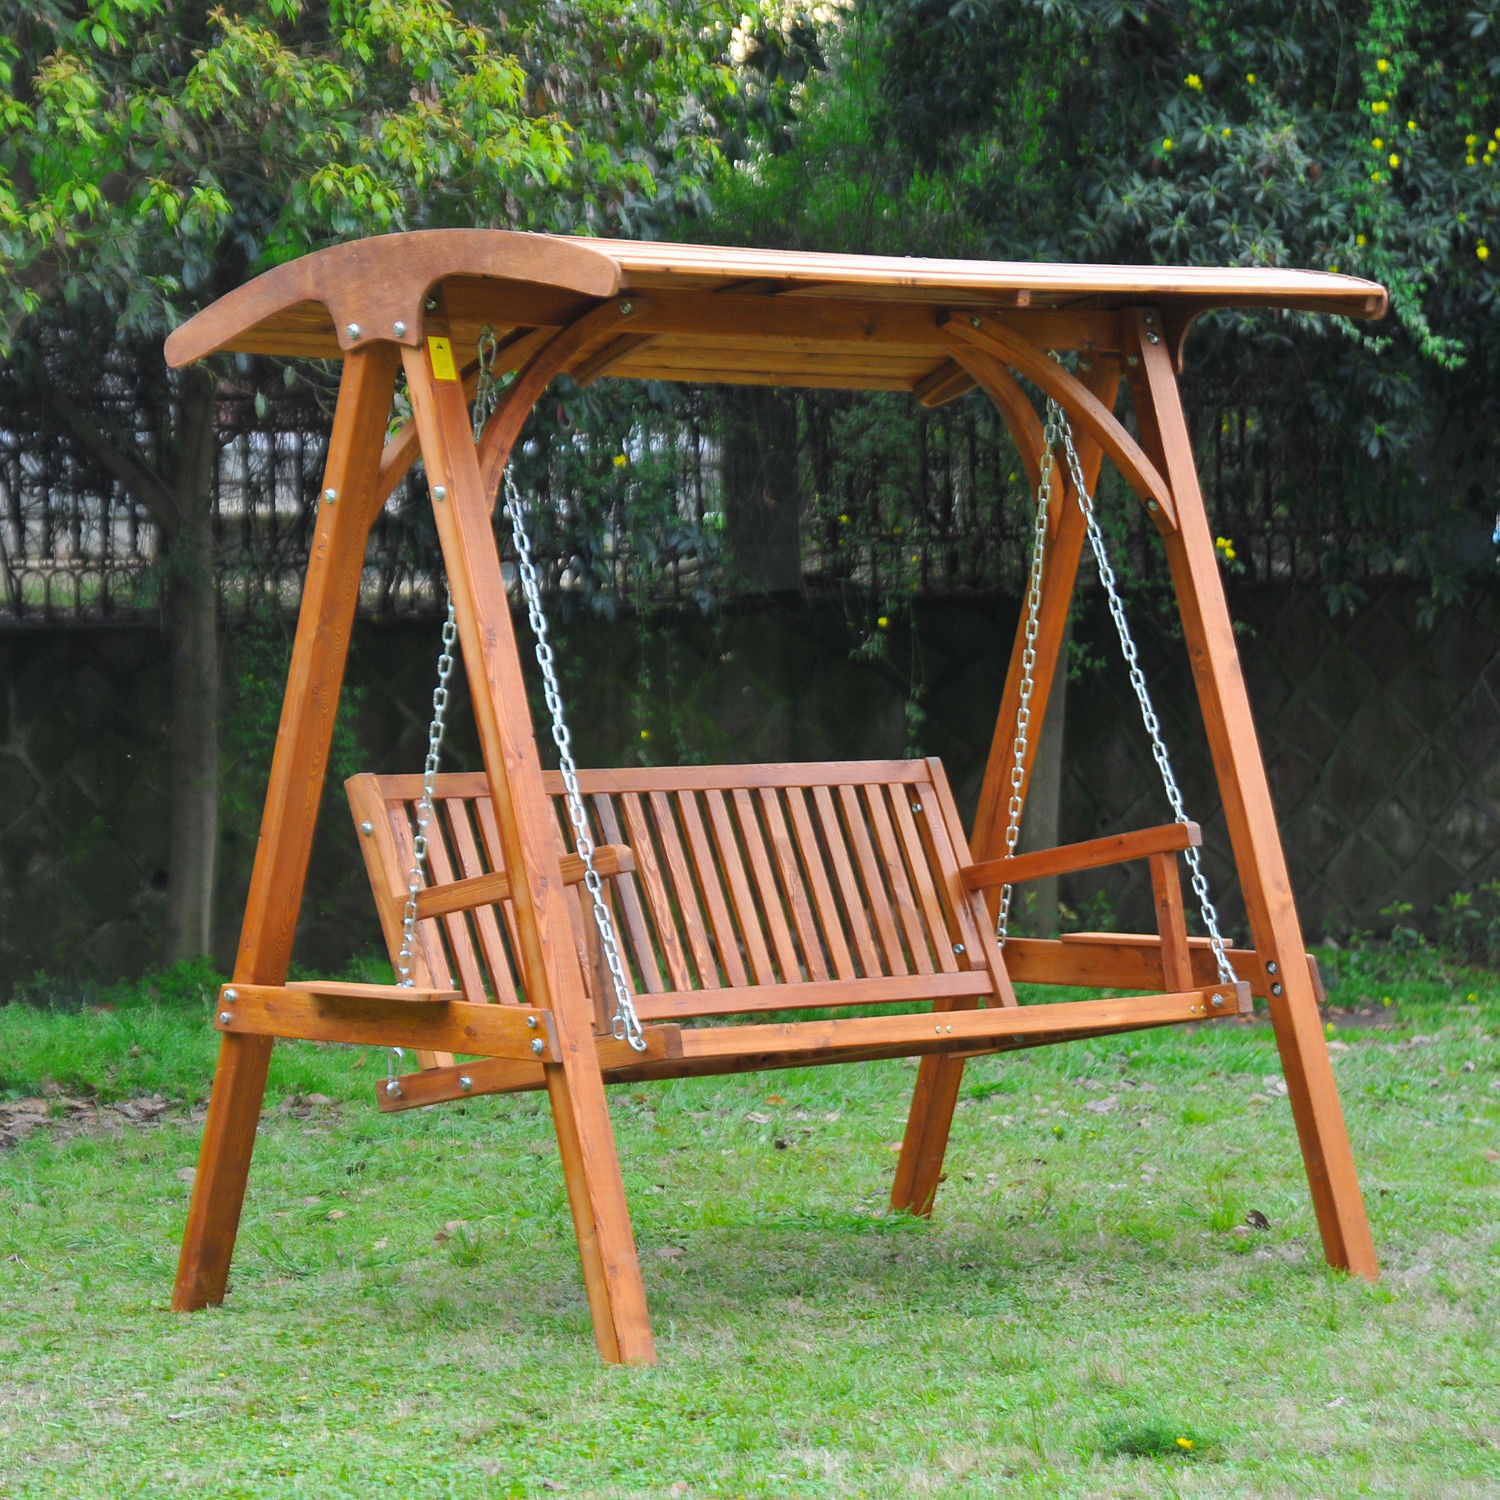 Outdoor Swing Bench: Outsunny Wooden Garden Swing Chair Seat Hammock Bench